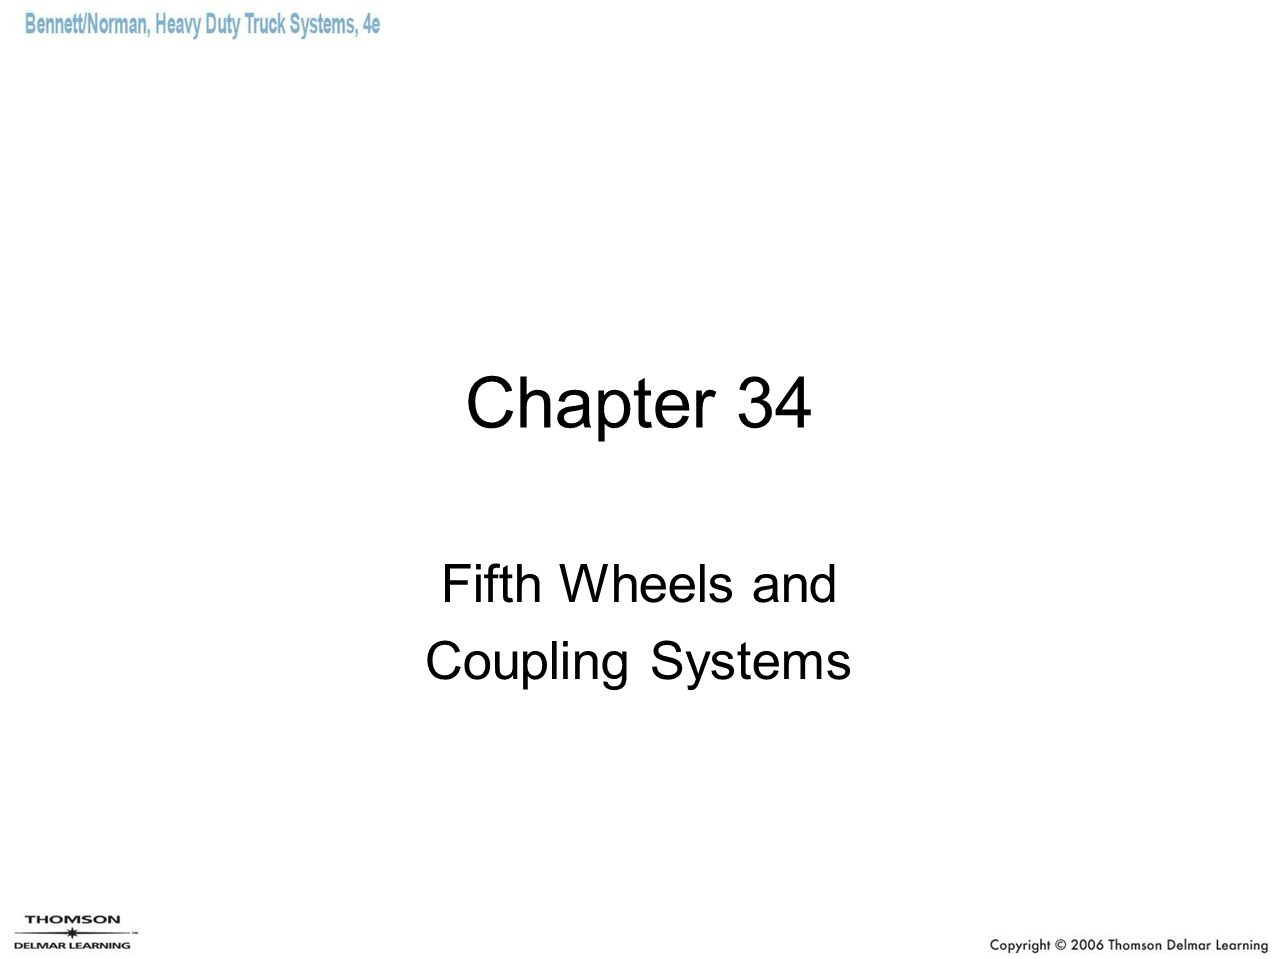 Chapter 34 Fifth Wheels and Coupling Systems